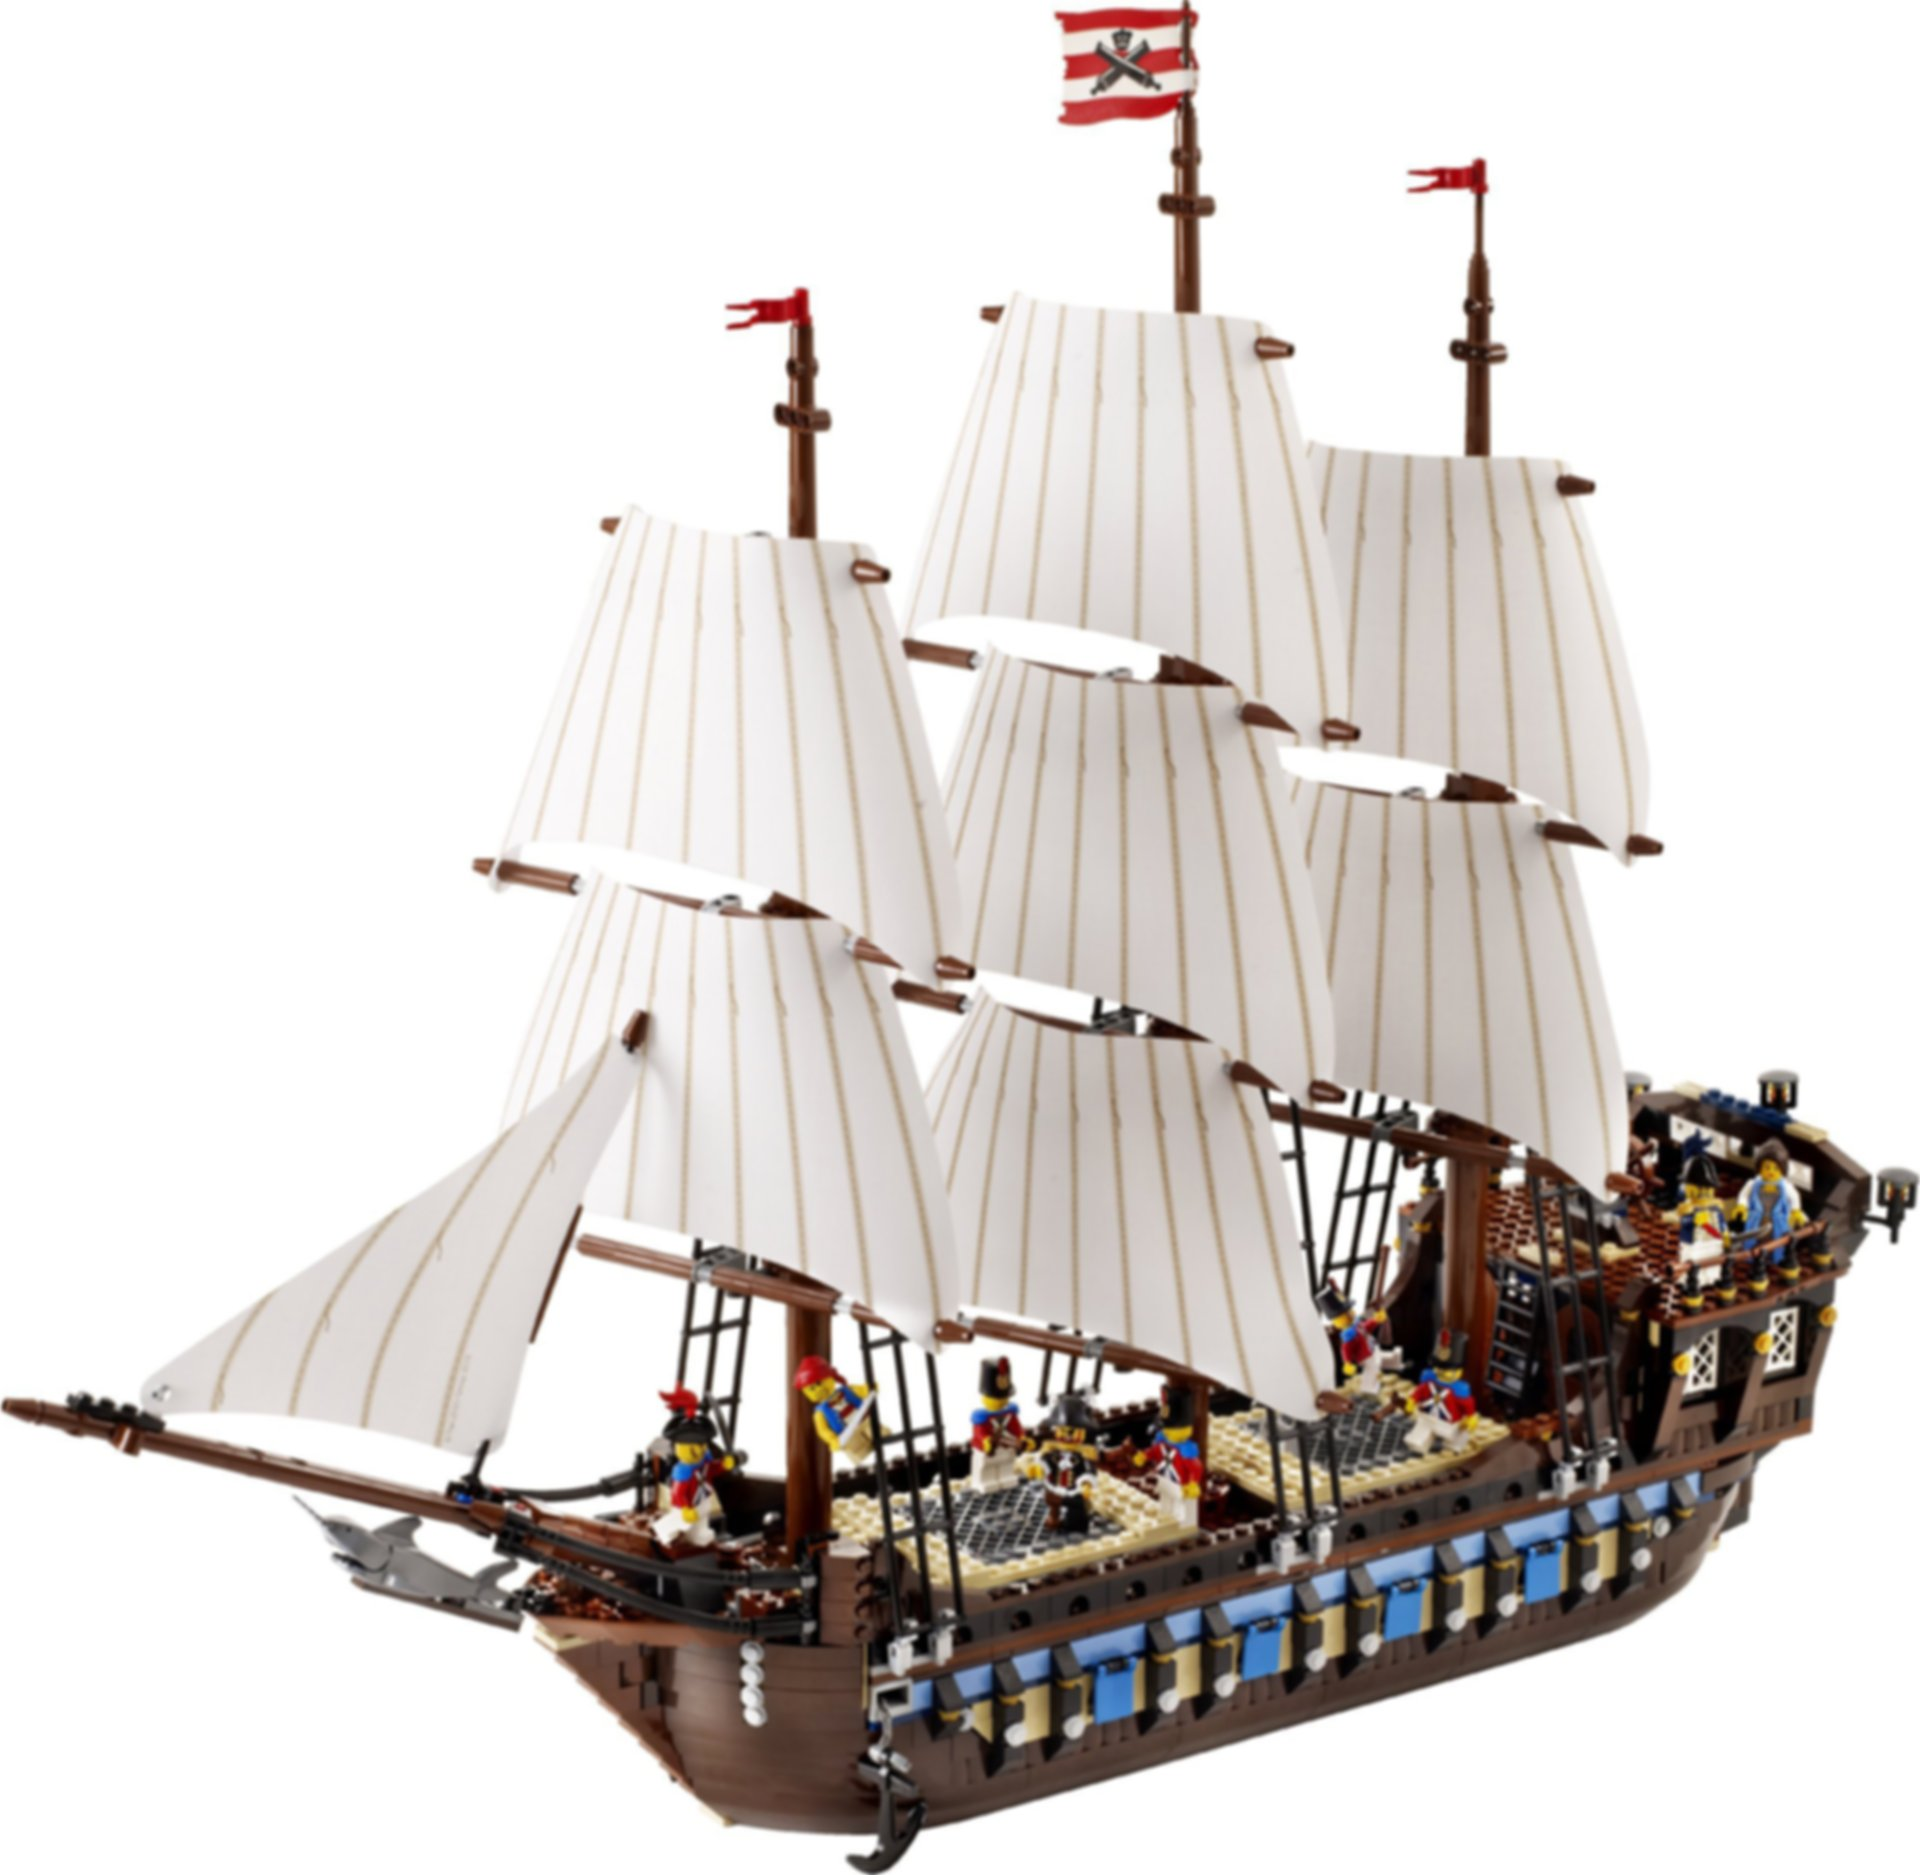 Imperial Flagship components